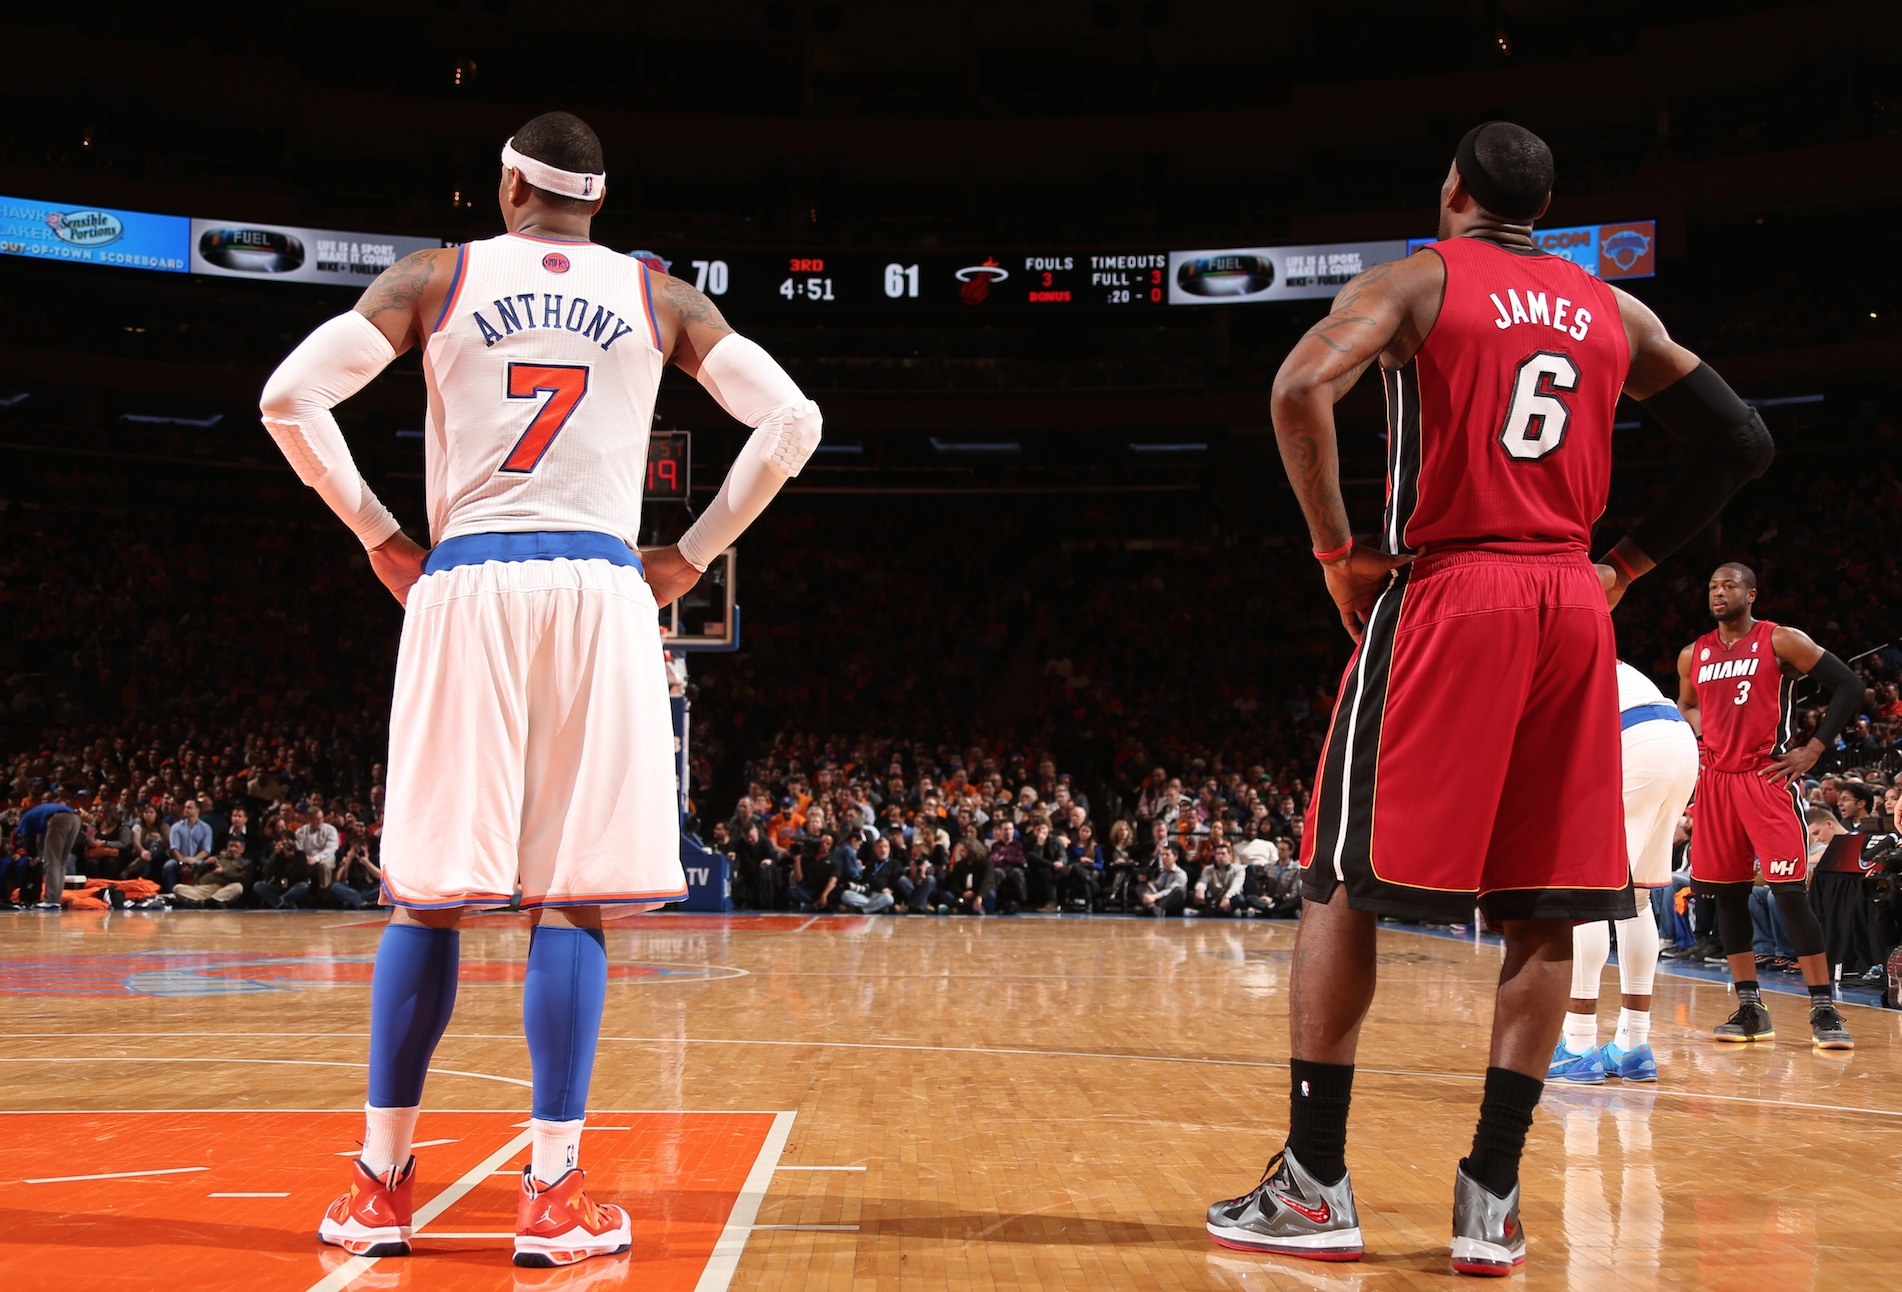 LeBron, Carmelo could spark free agency frenzy